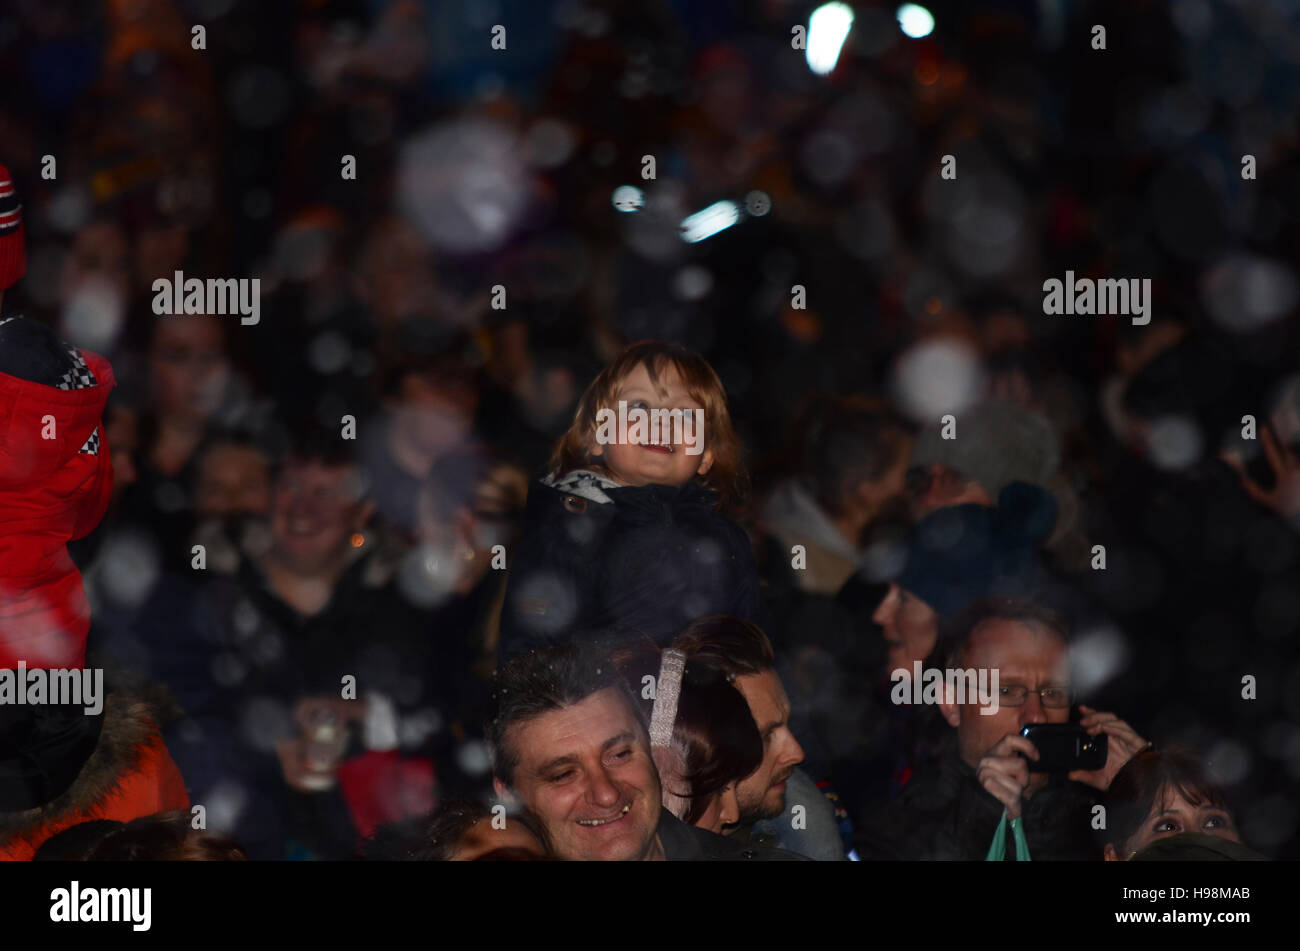 christmas-lights-switch-on-event-in-southend-accompanied-by-snow-machines-H98MAB.jpg